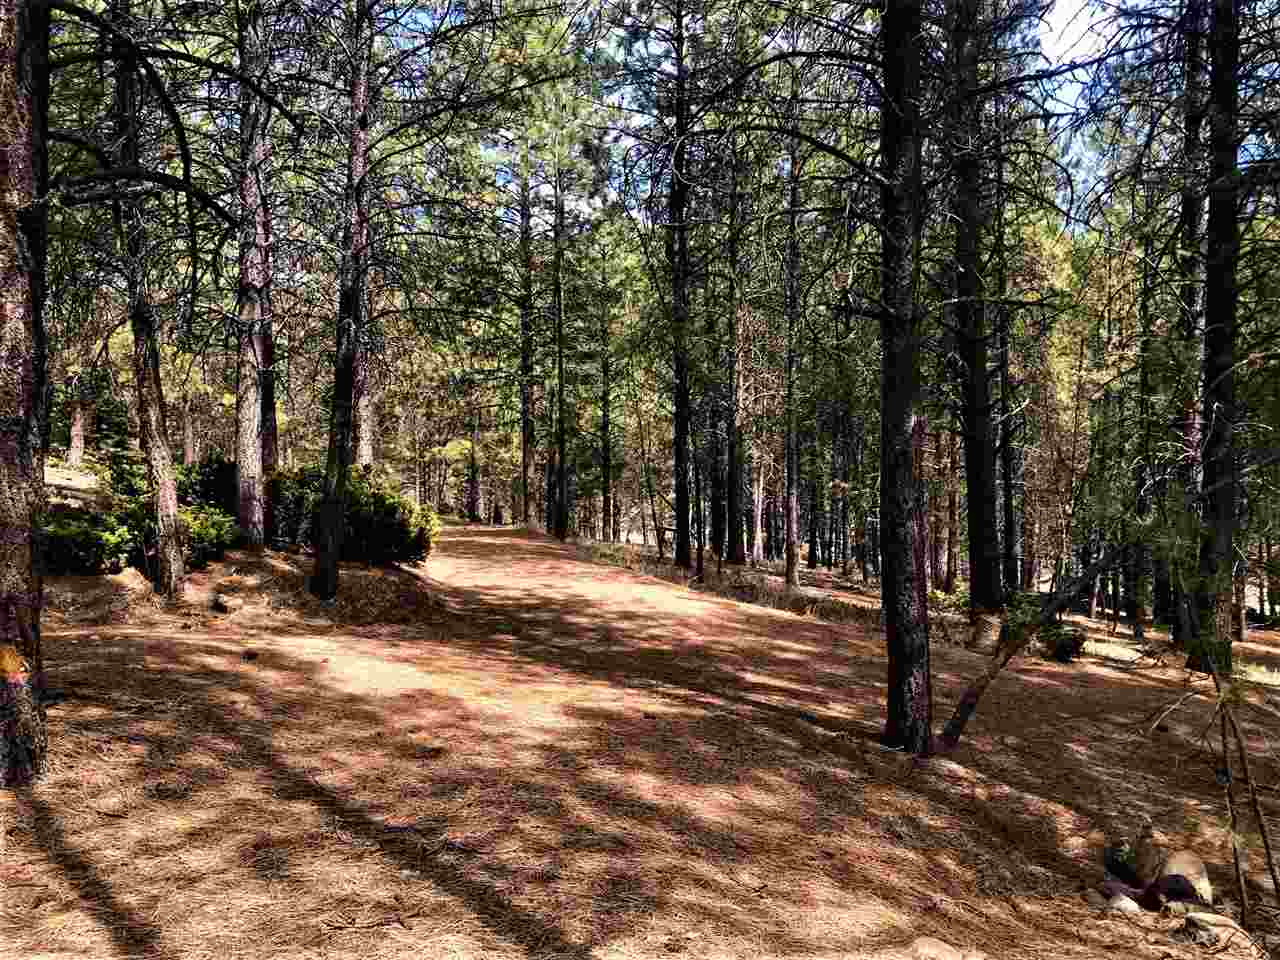 26904 Hwy 64, Taos Canyon, NM 87571